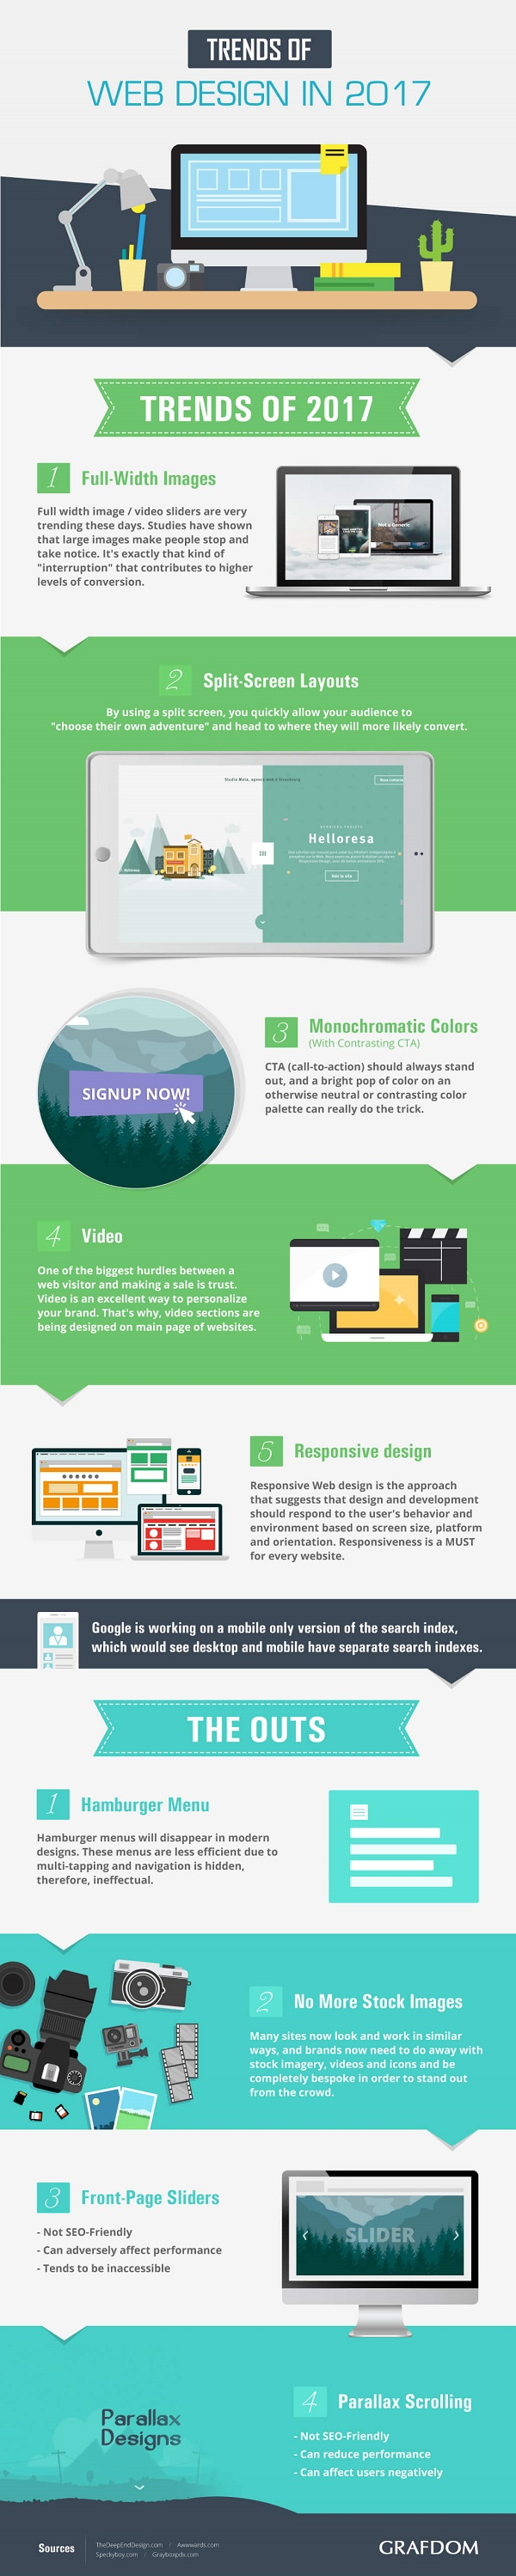 Infographic: Popular And Outgoing Trends Of Web Design In 2017